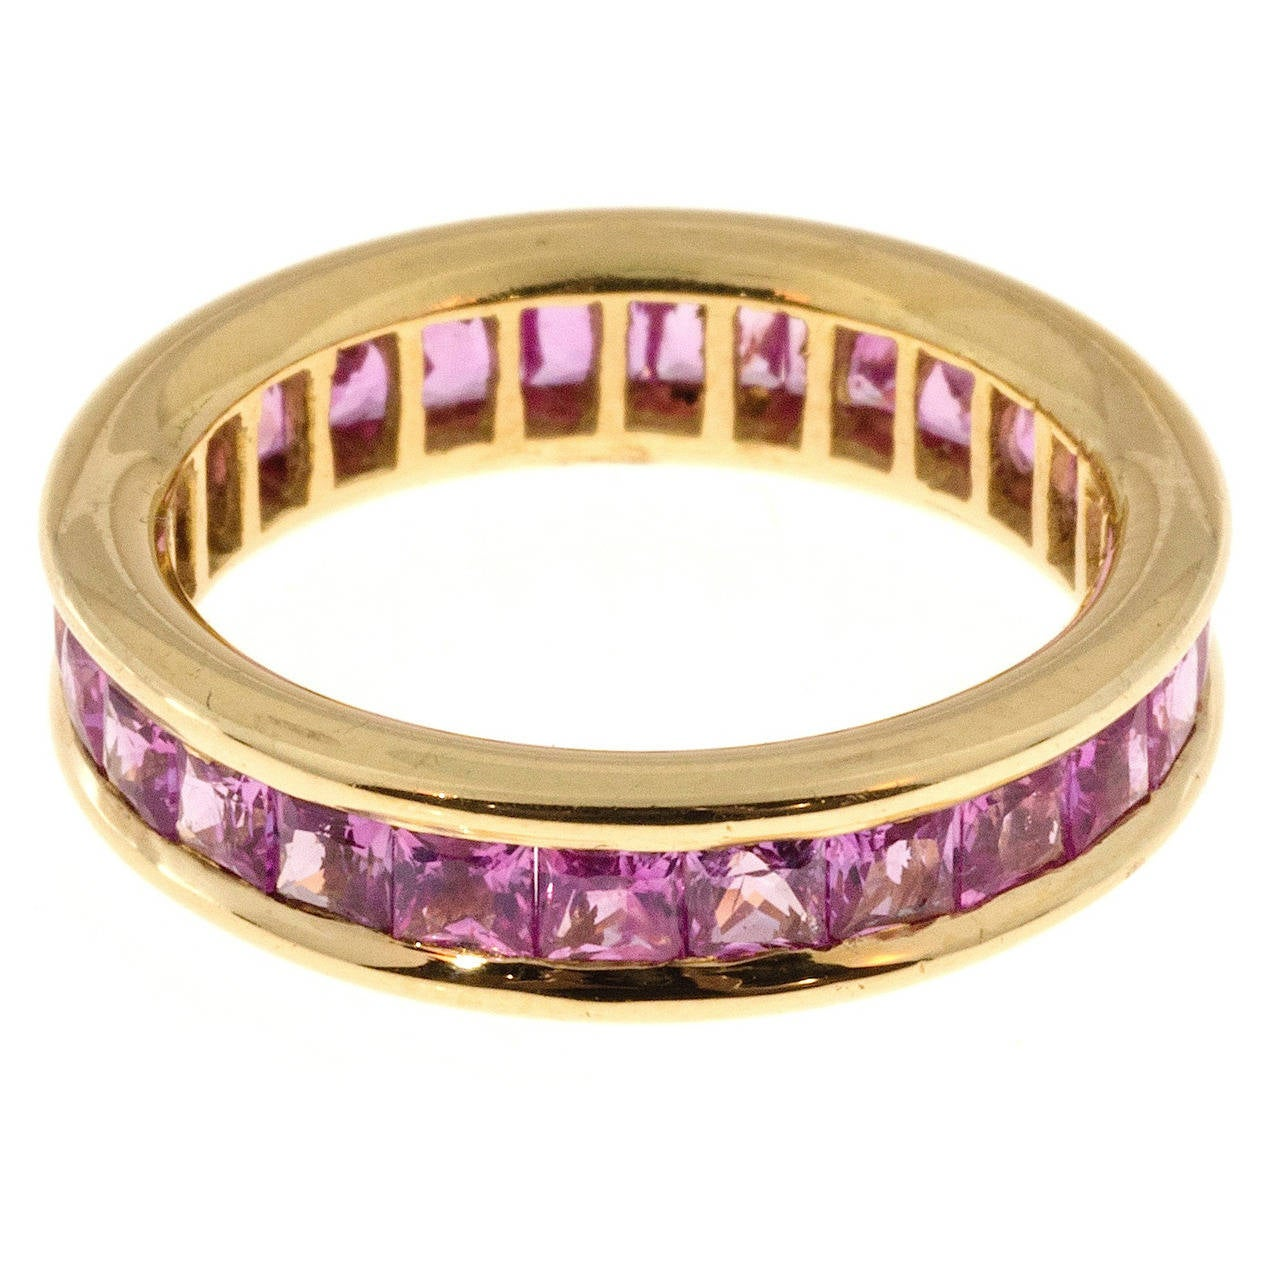 Princess Cut Pink Sapphire Gold Eternity Band Ring